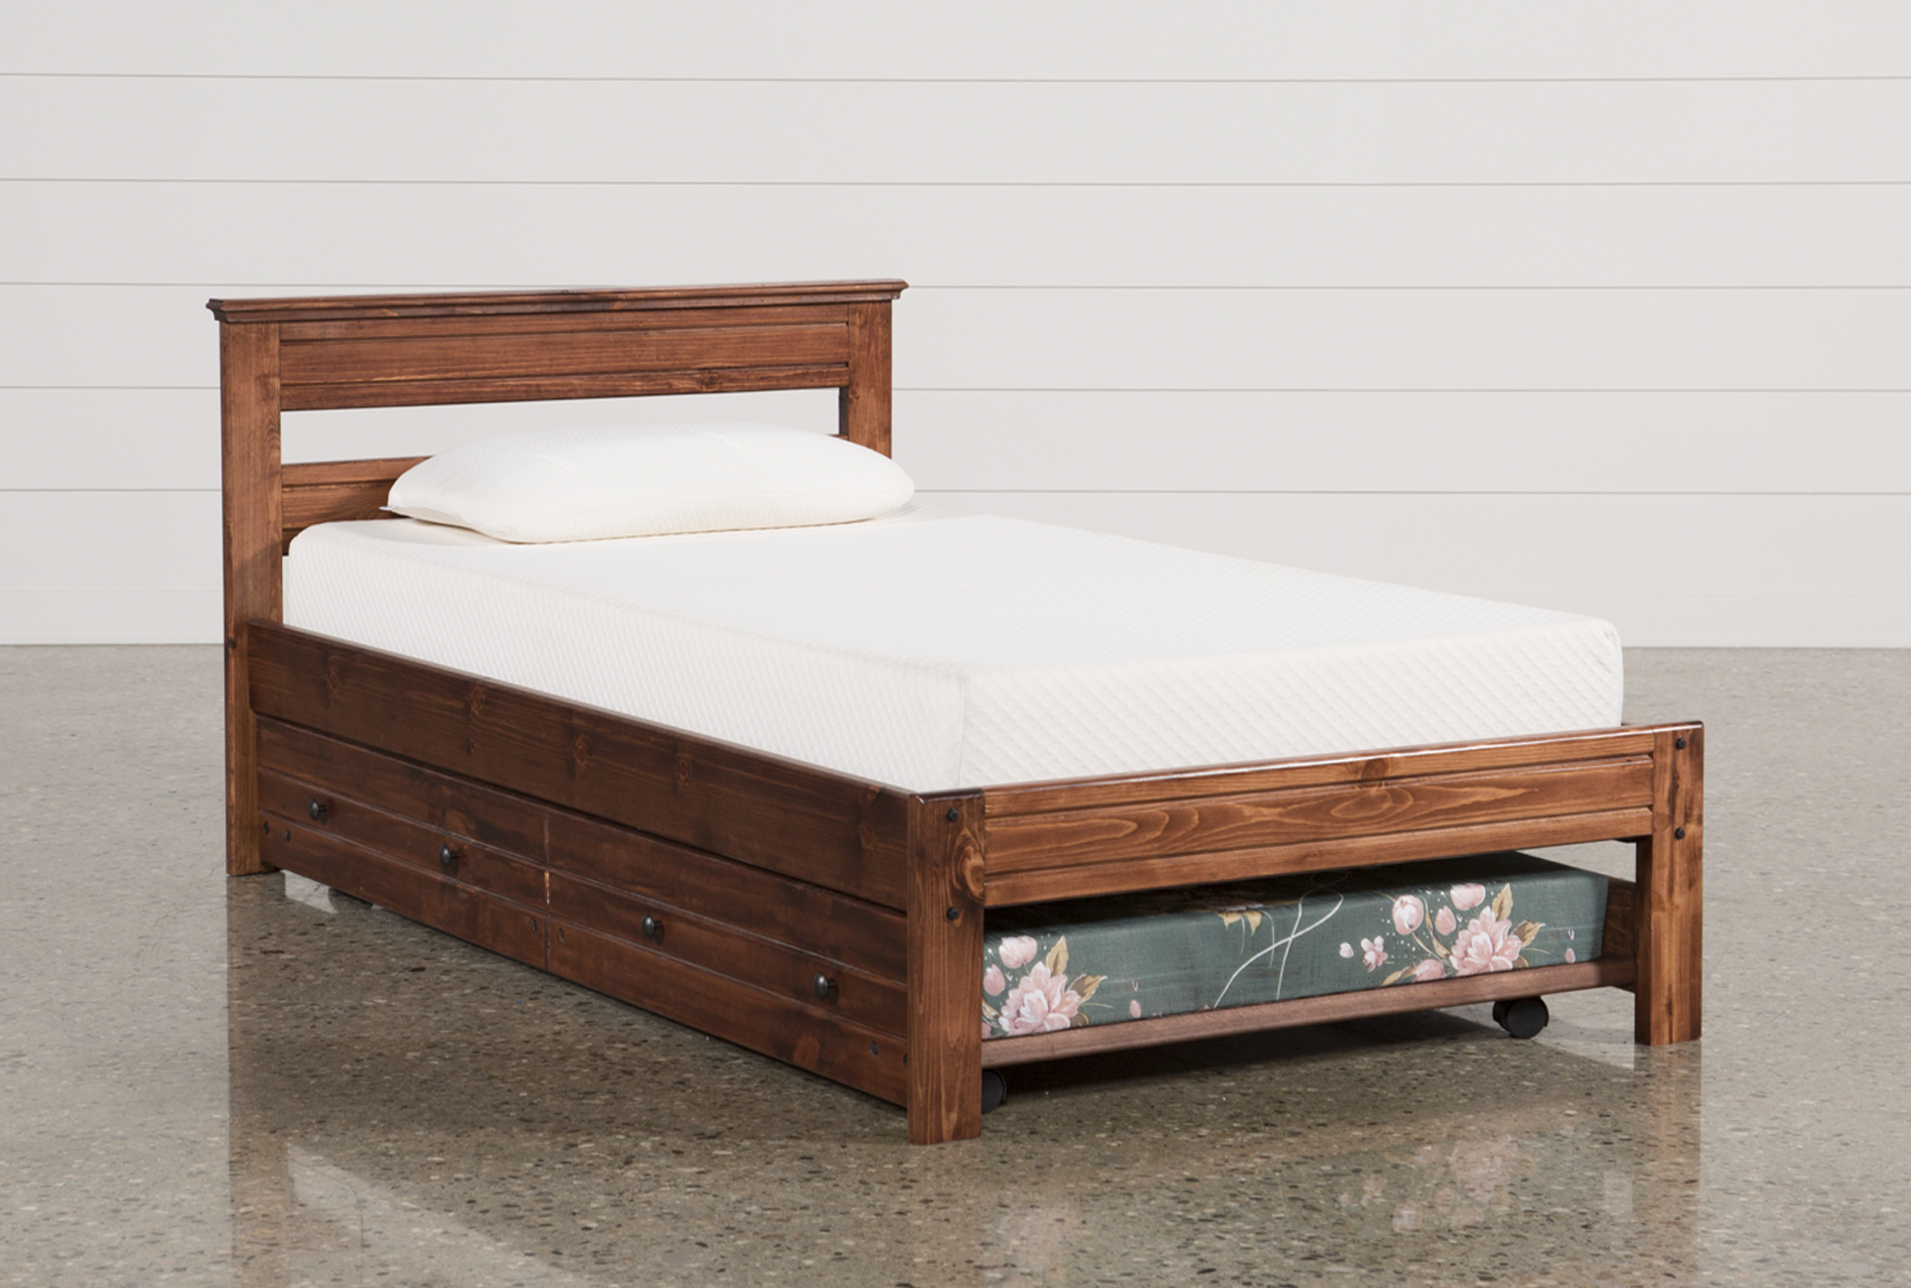 Mattress Platform Sedona Twin Platform Bed With Trundle With Mattress